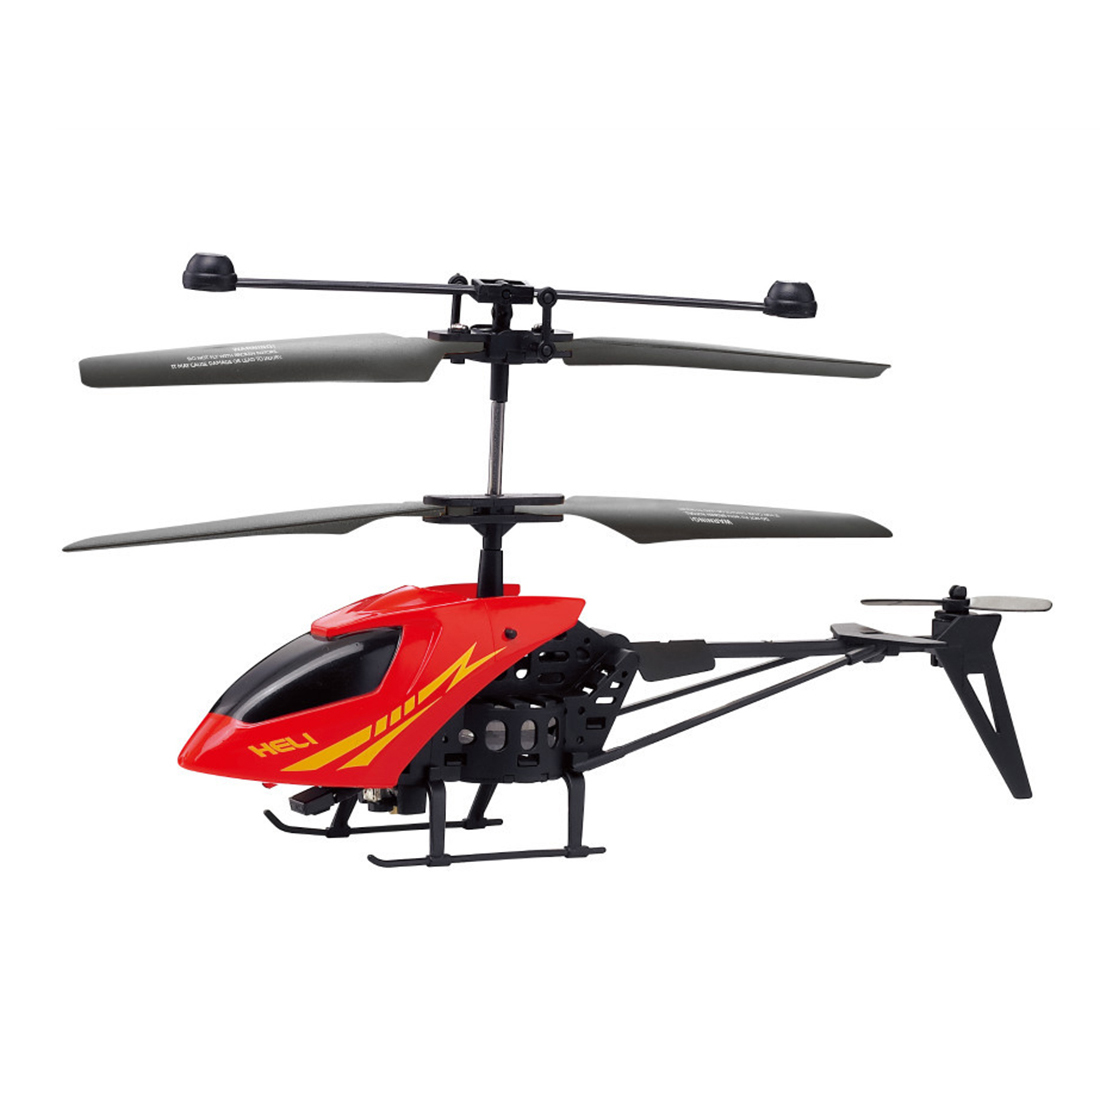 Shatter Resistant Radio Remote Control Aircraft 2.5CH I/R Quadcopter RC Helicopter Kids Gifts